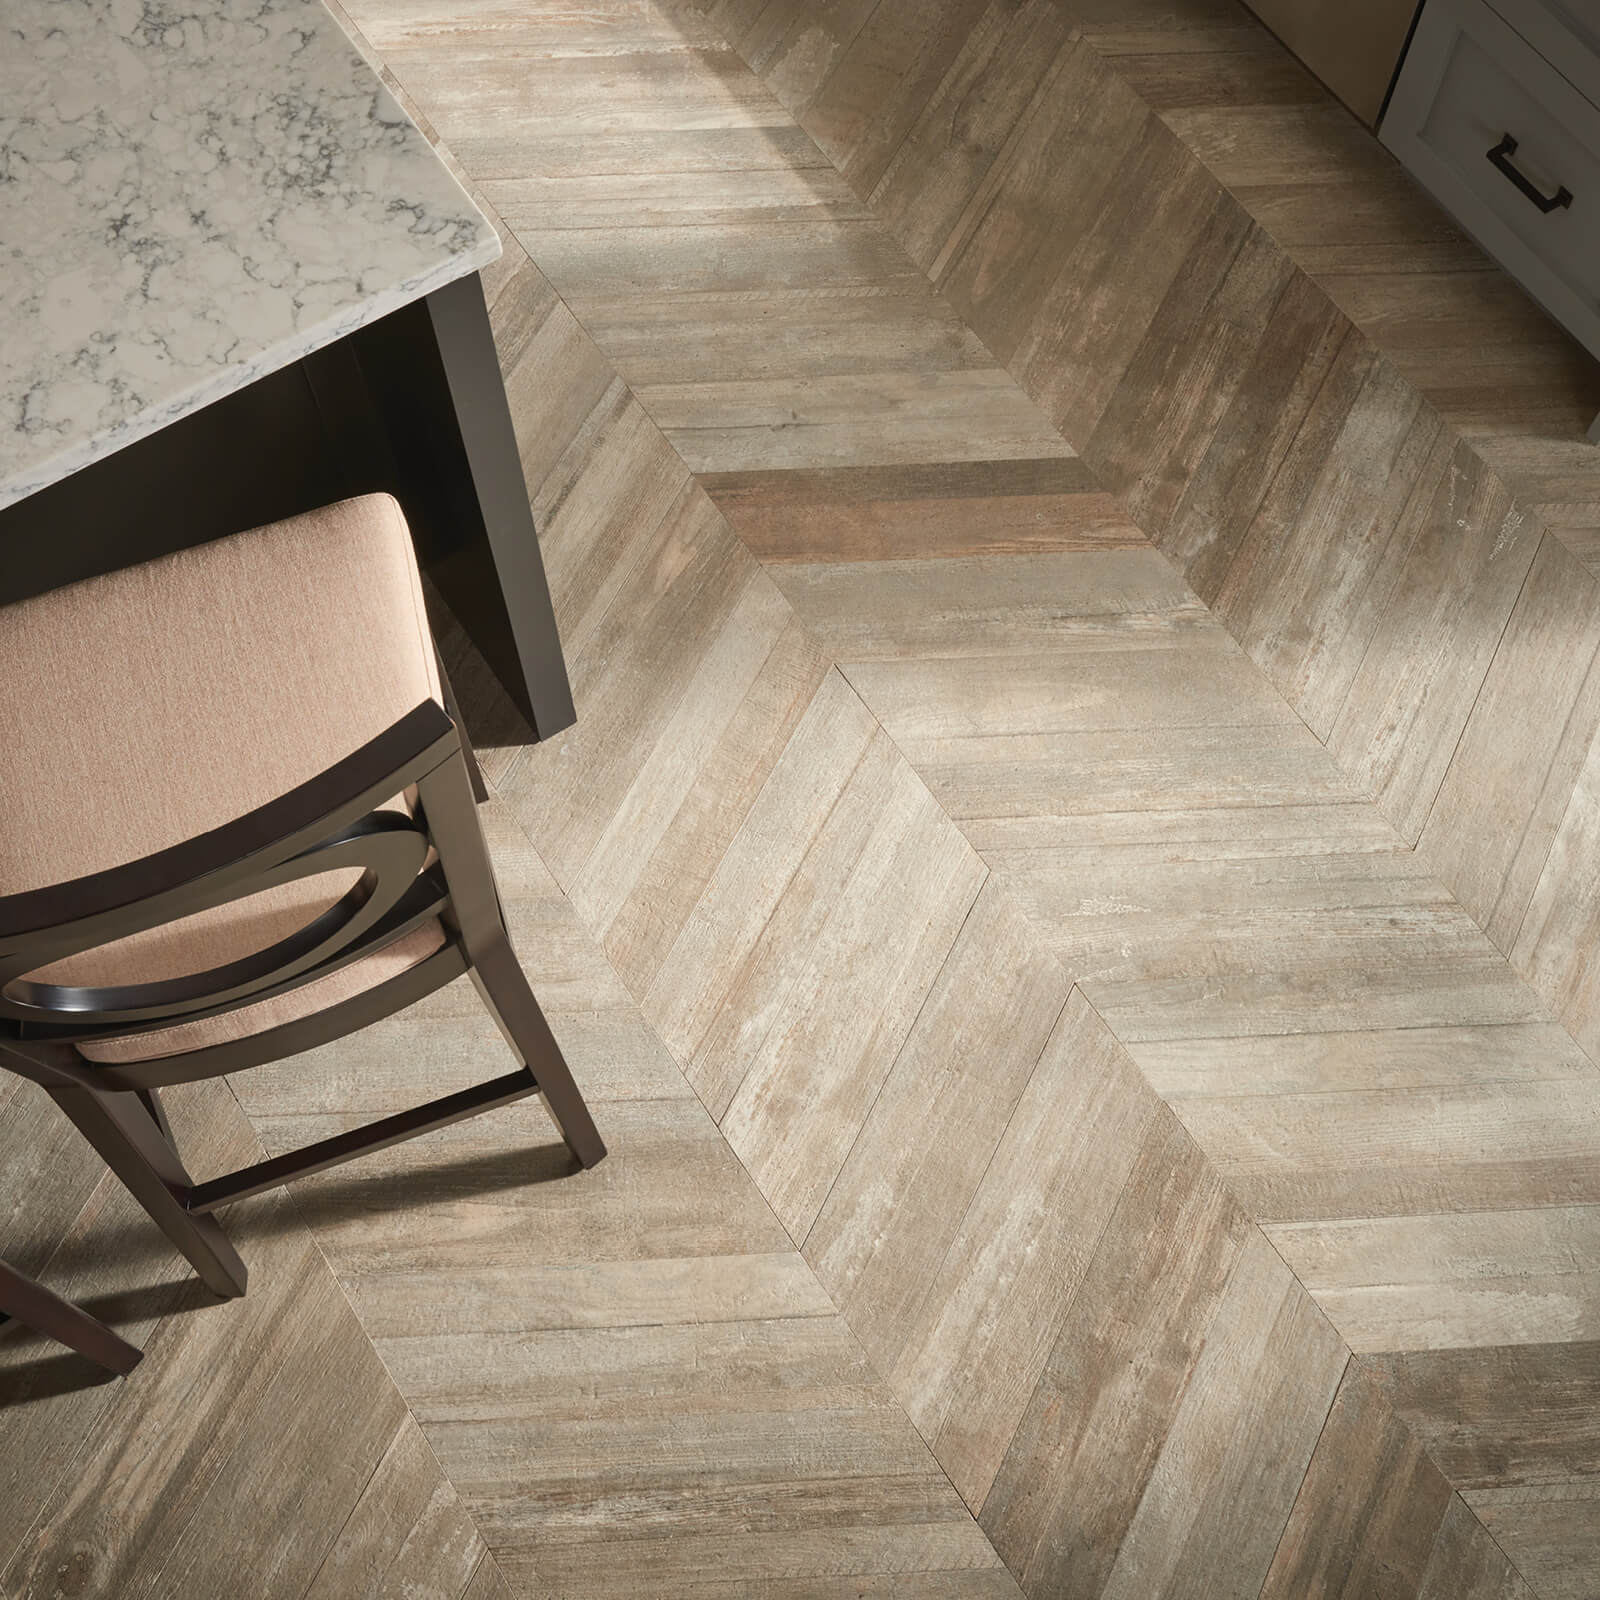 Different patterns of Tile | BMG Flooring & Tile Center